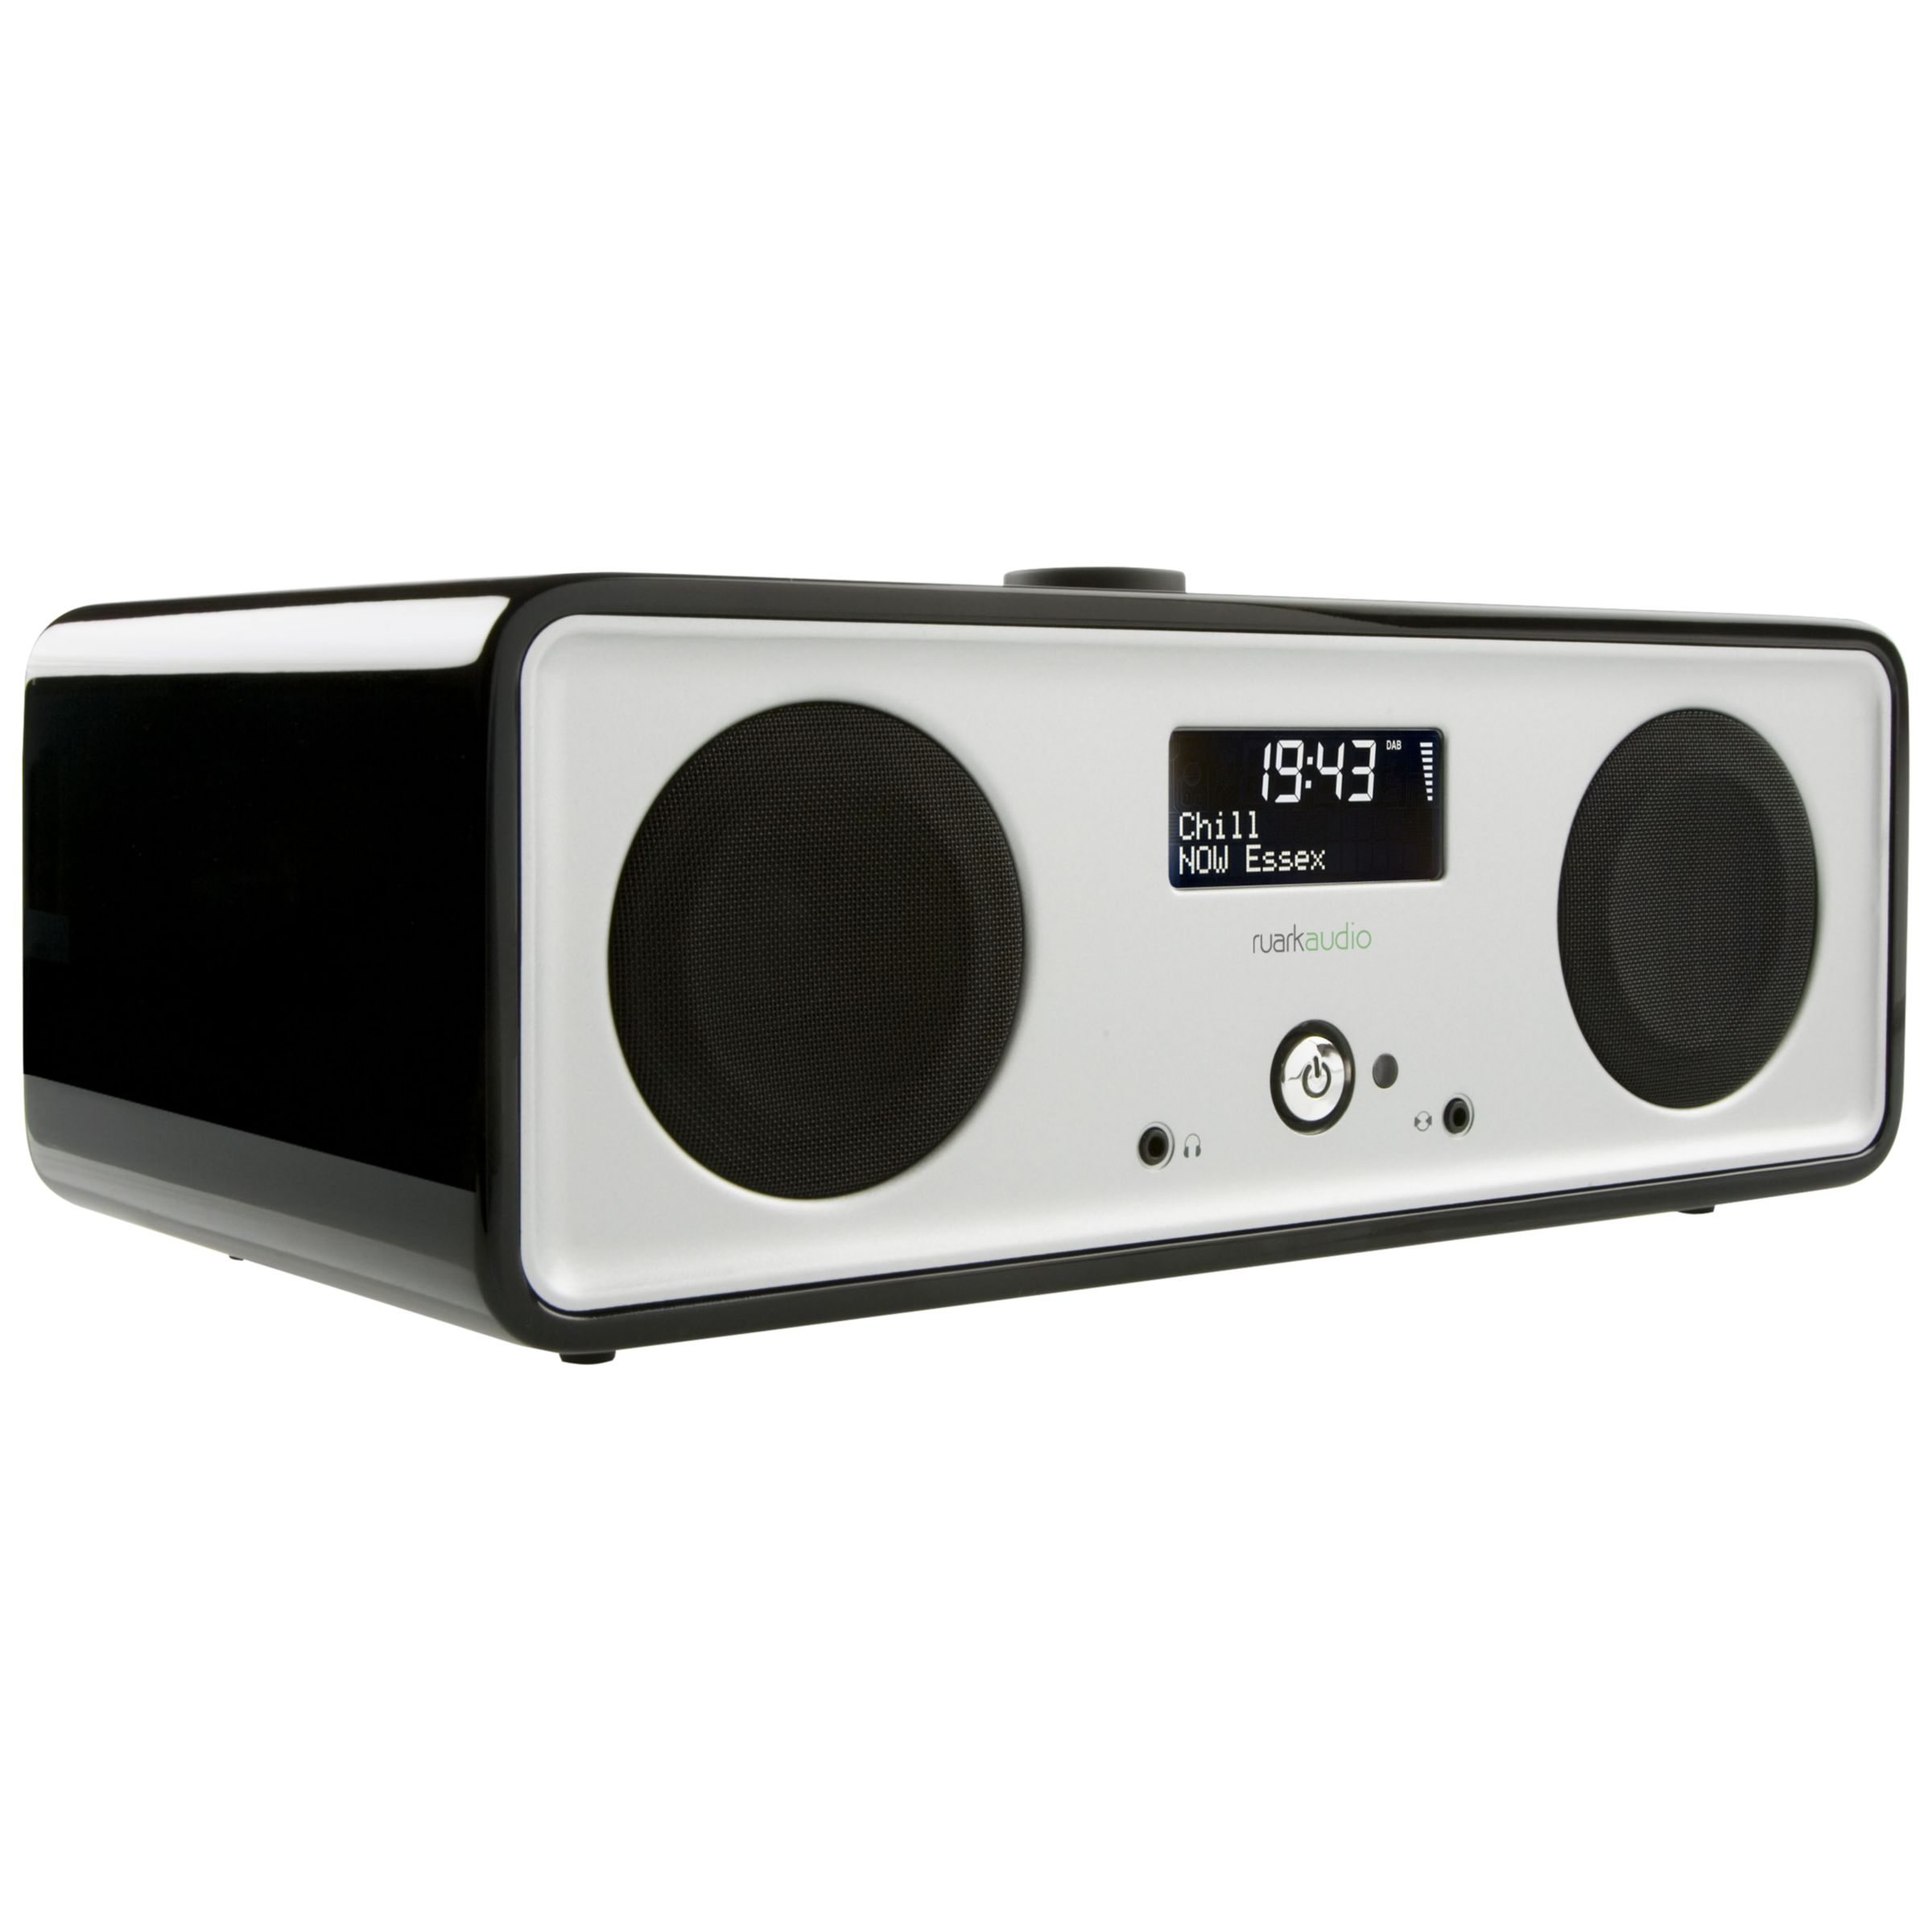 dab ipod clock radio shop for cheap clock radios and save online. Black Bedroom Furniture Sets. Home Design Ideas